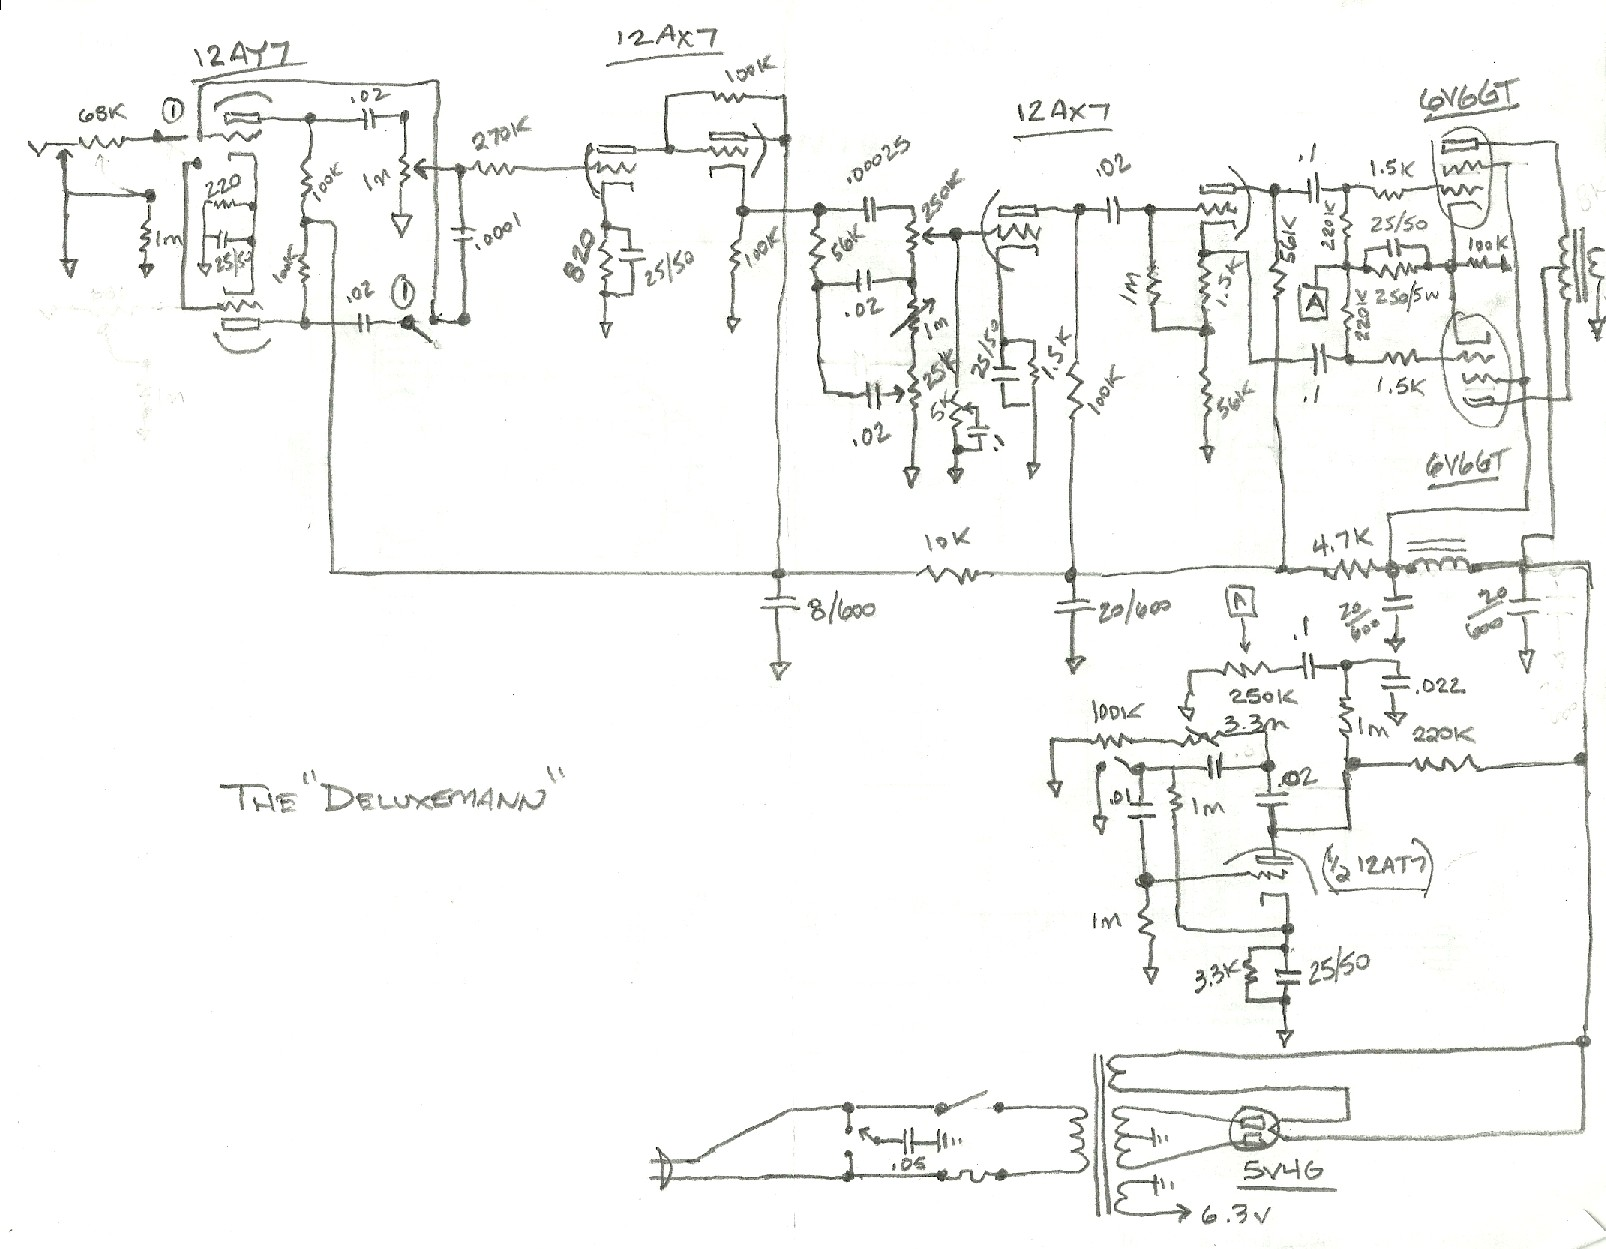 Tube amp guru's...want to check out my hack job schematic? - Gearz